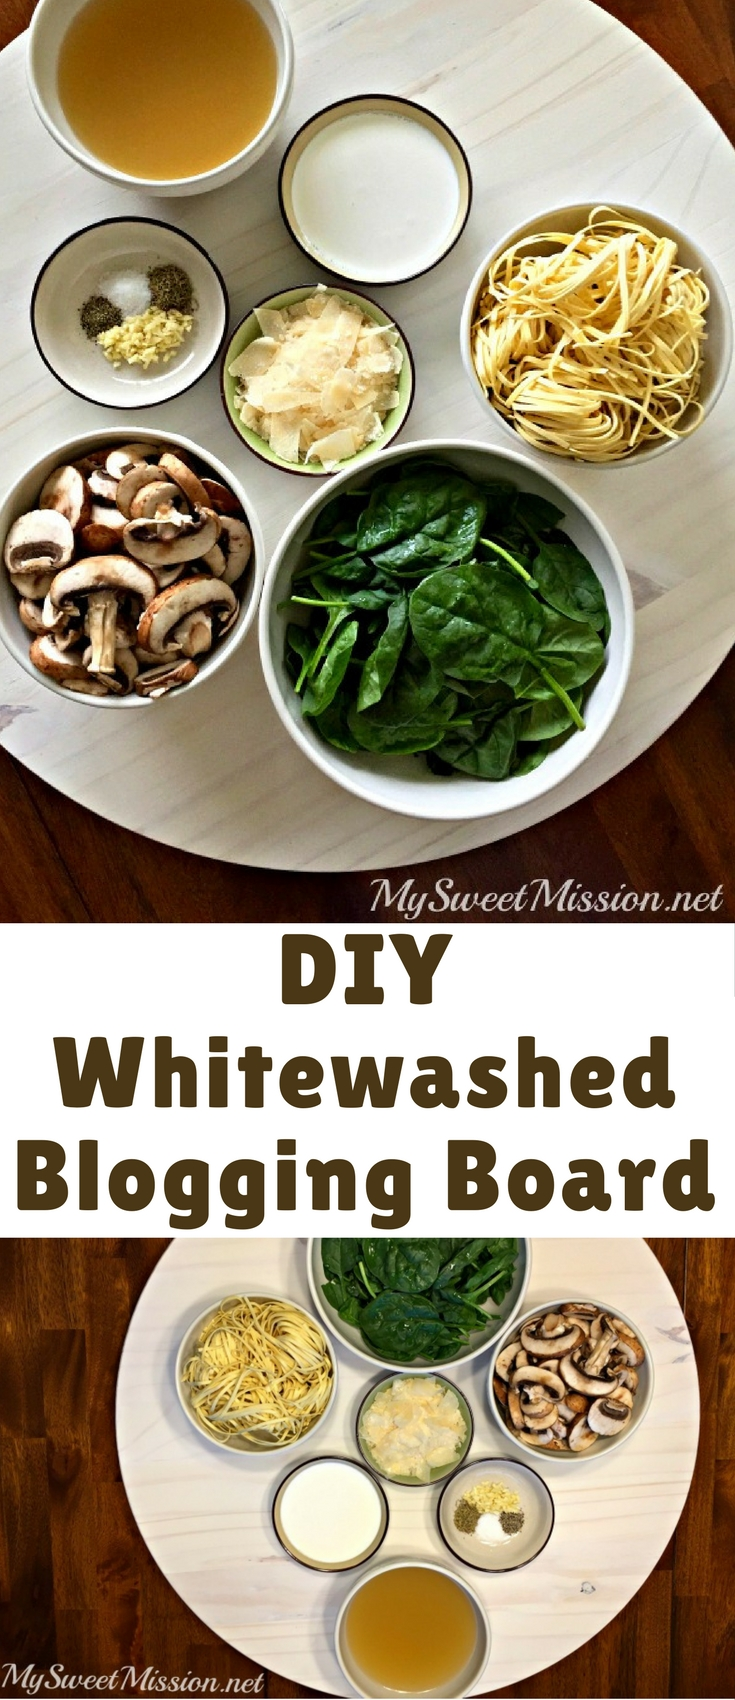 I am so excited to share this beautiful DIY Whitewashed Blogging Board Tutorial with you and all my blogging friends!